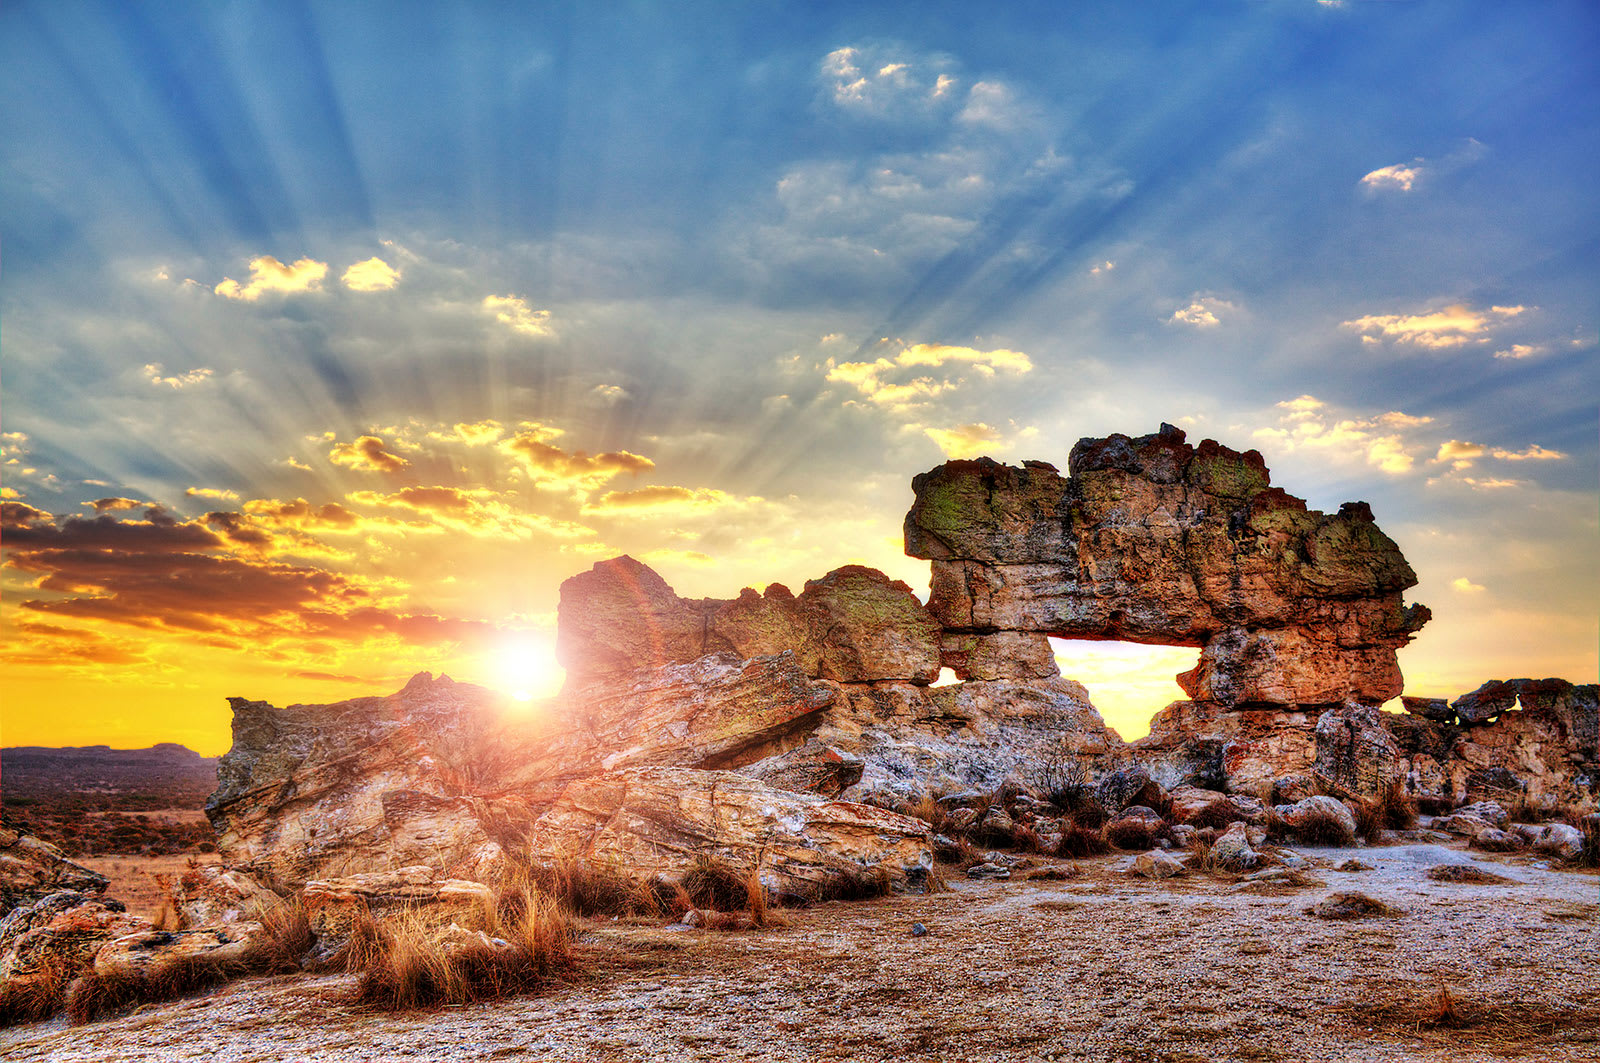 Sunset behind rock formation in Madagascar